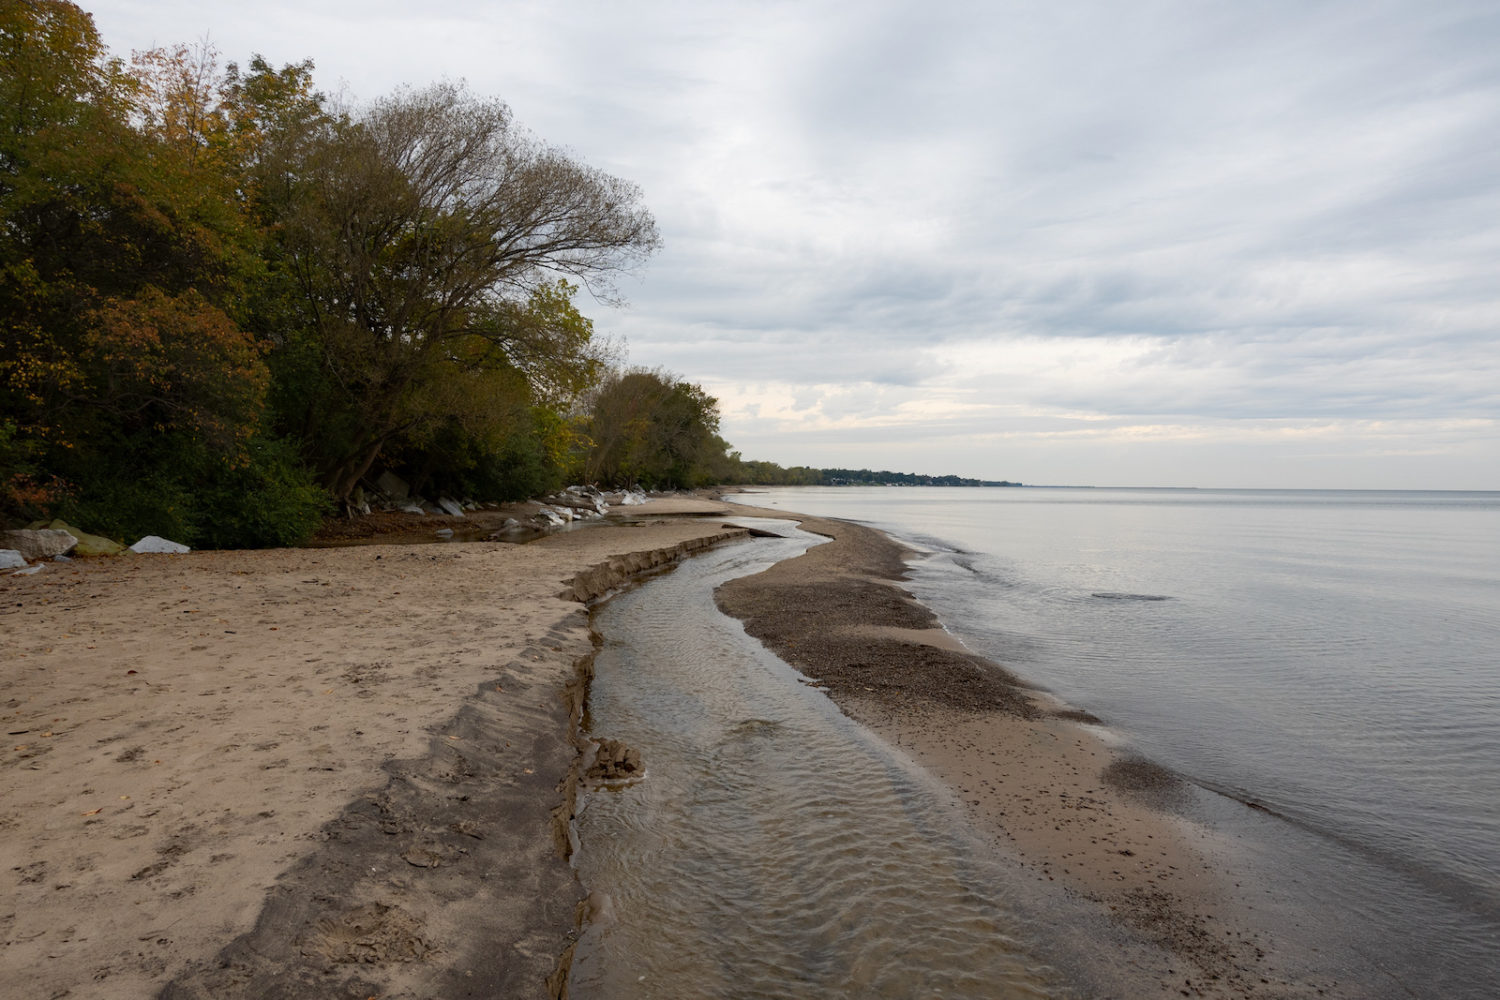 Outlet from Eastman Lake flowing into Lake Ontario at Durand